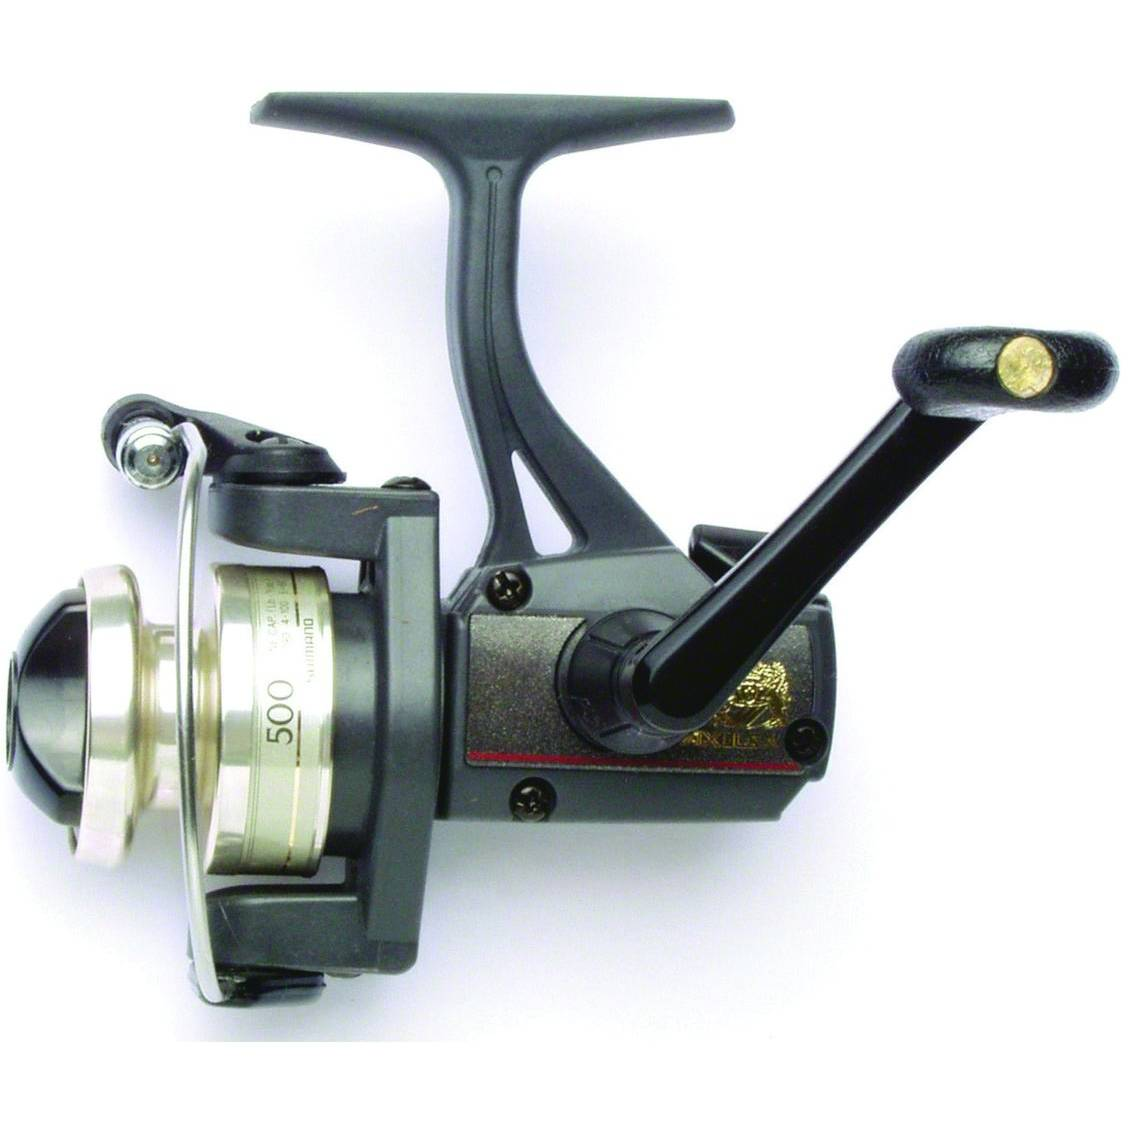 Shimano AX FB Spinning Reel; This is part of the Spinning collection offered from Fishin' My Best Life - fishinmybestlife.com